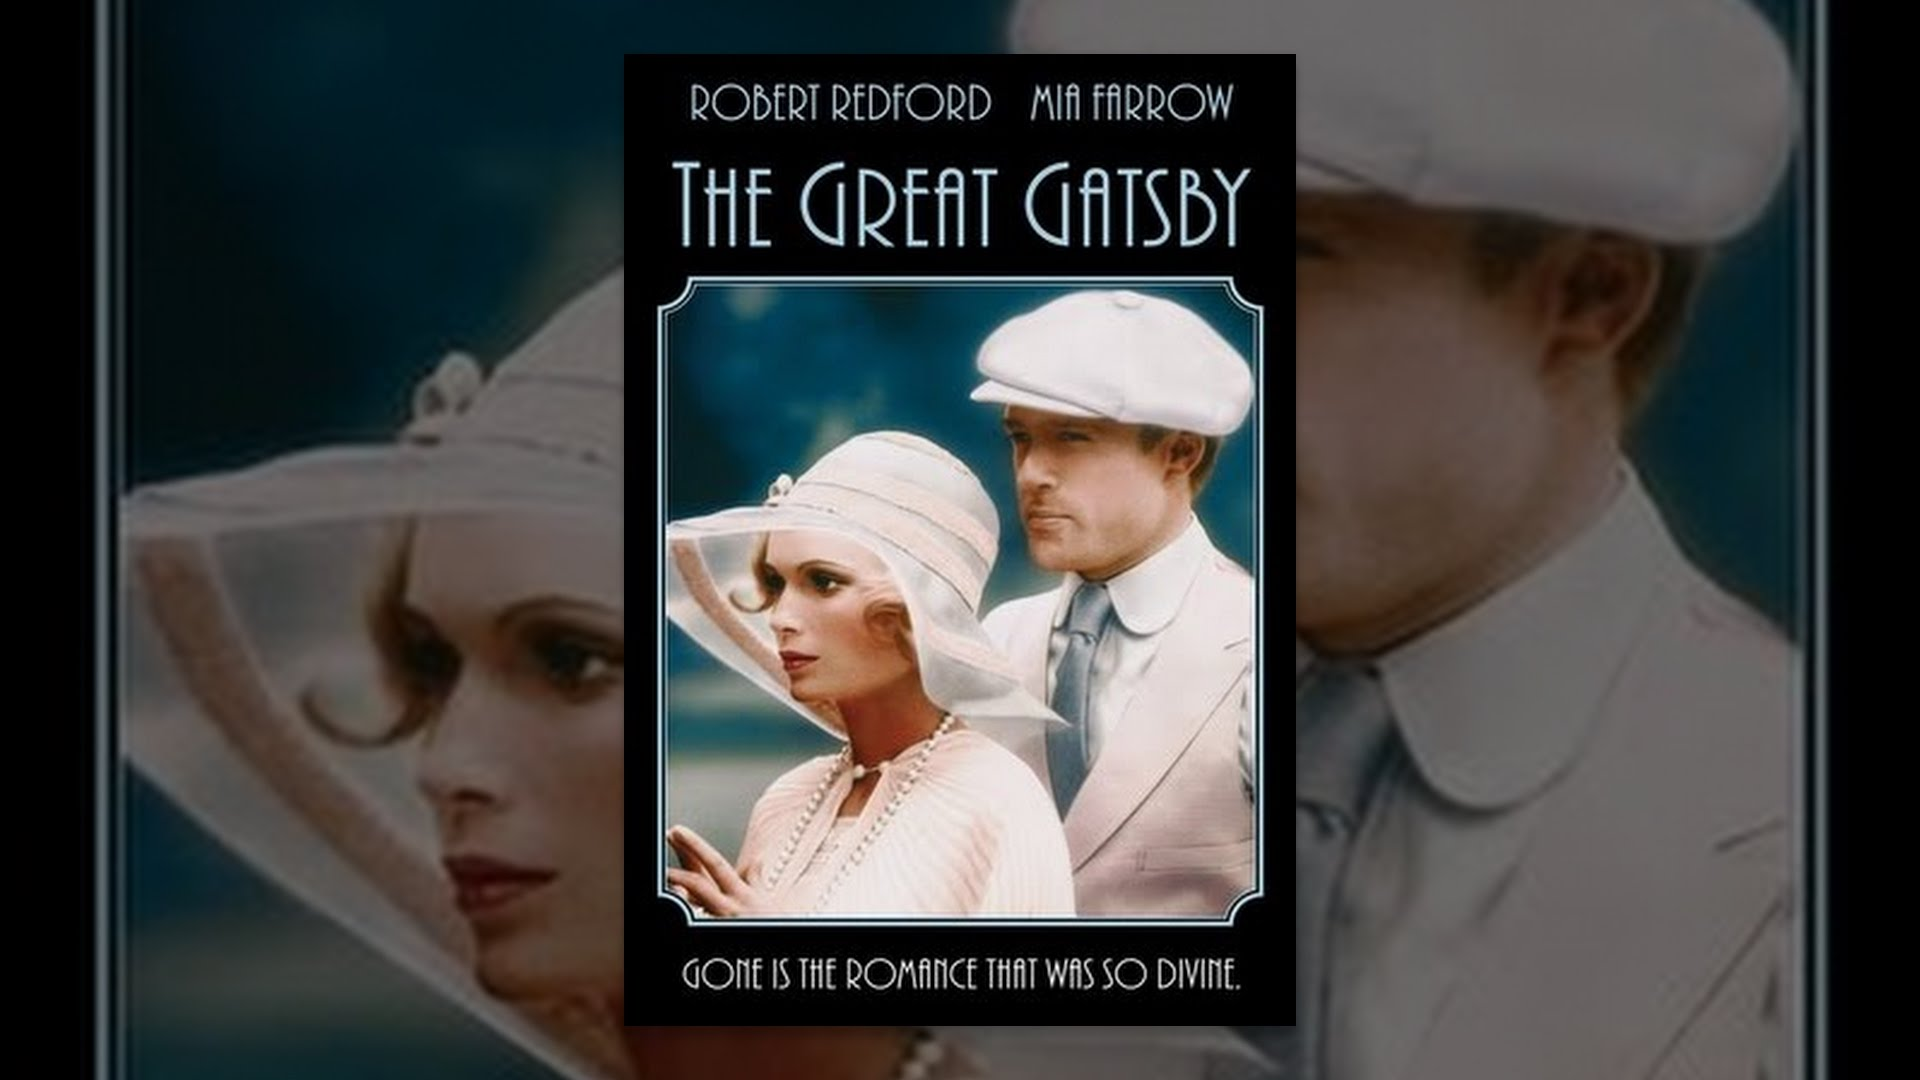 Great Gatsby 1974 Costumes The Great Gatsby 1974